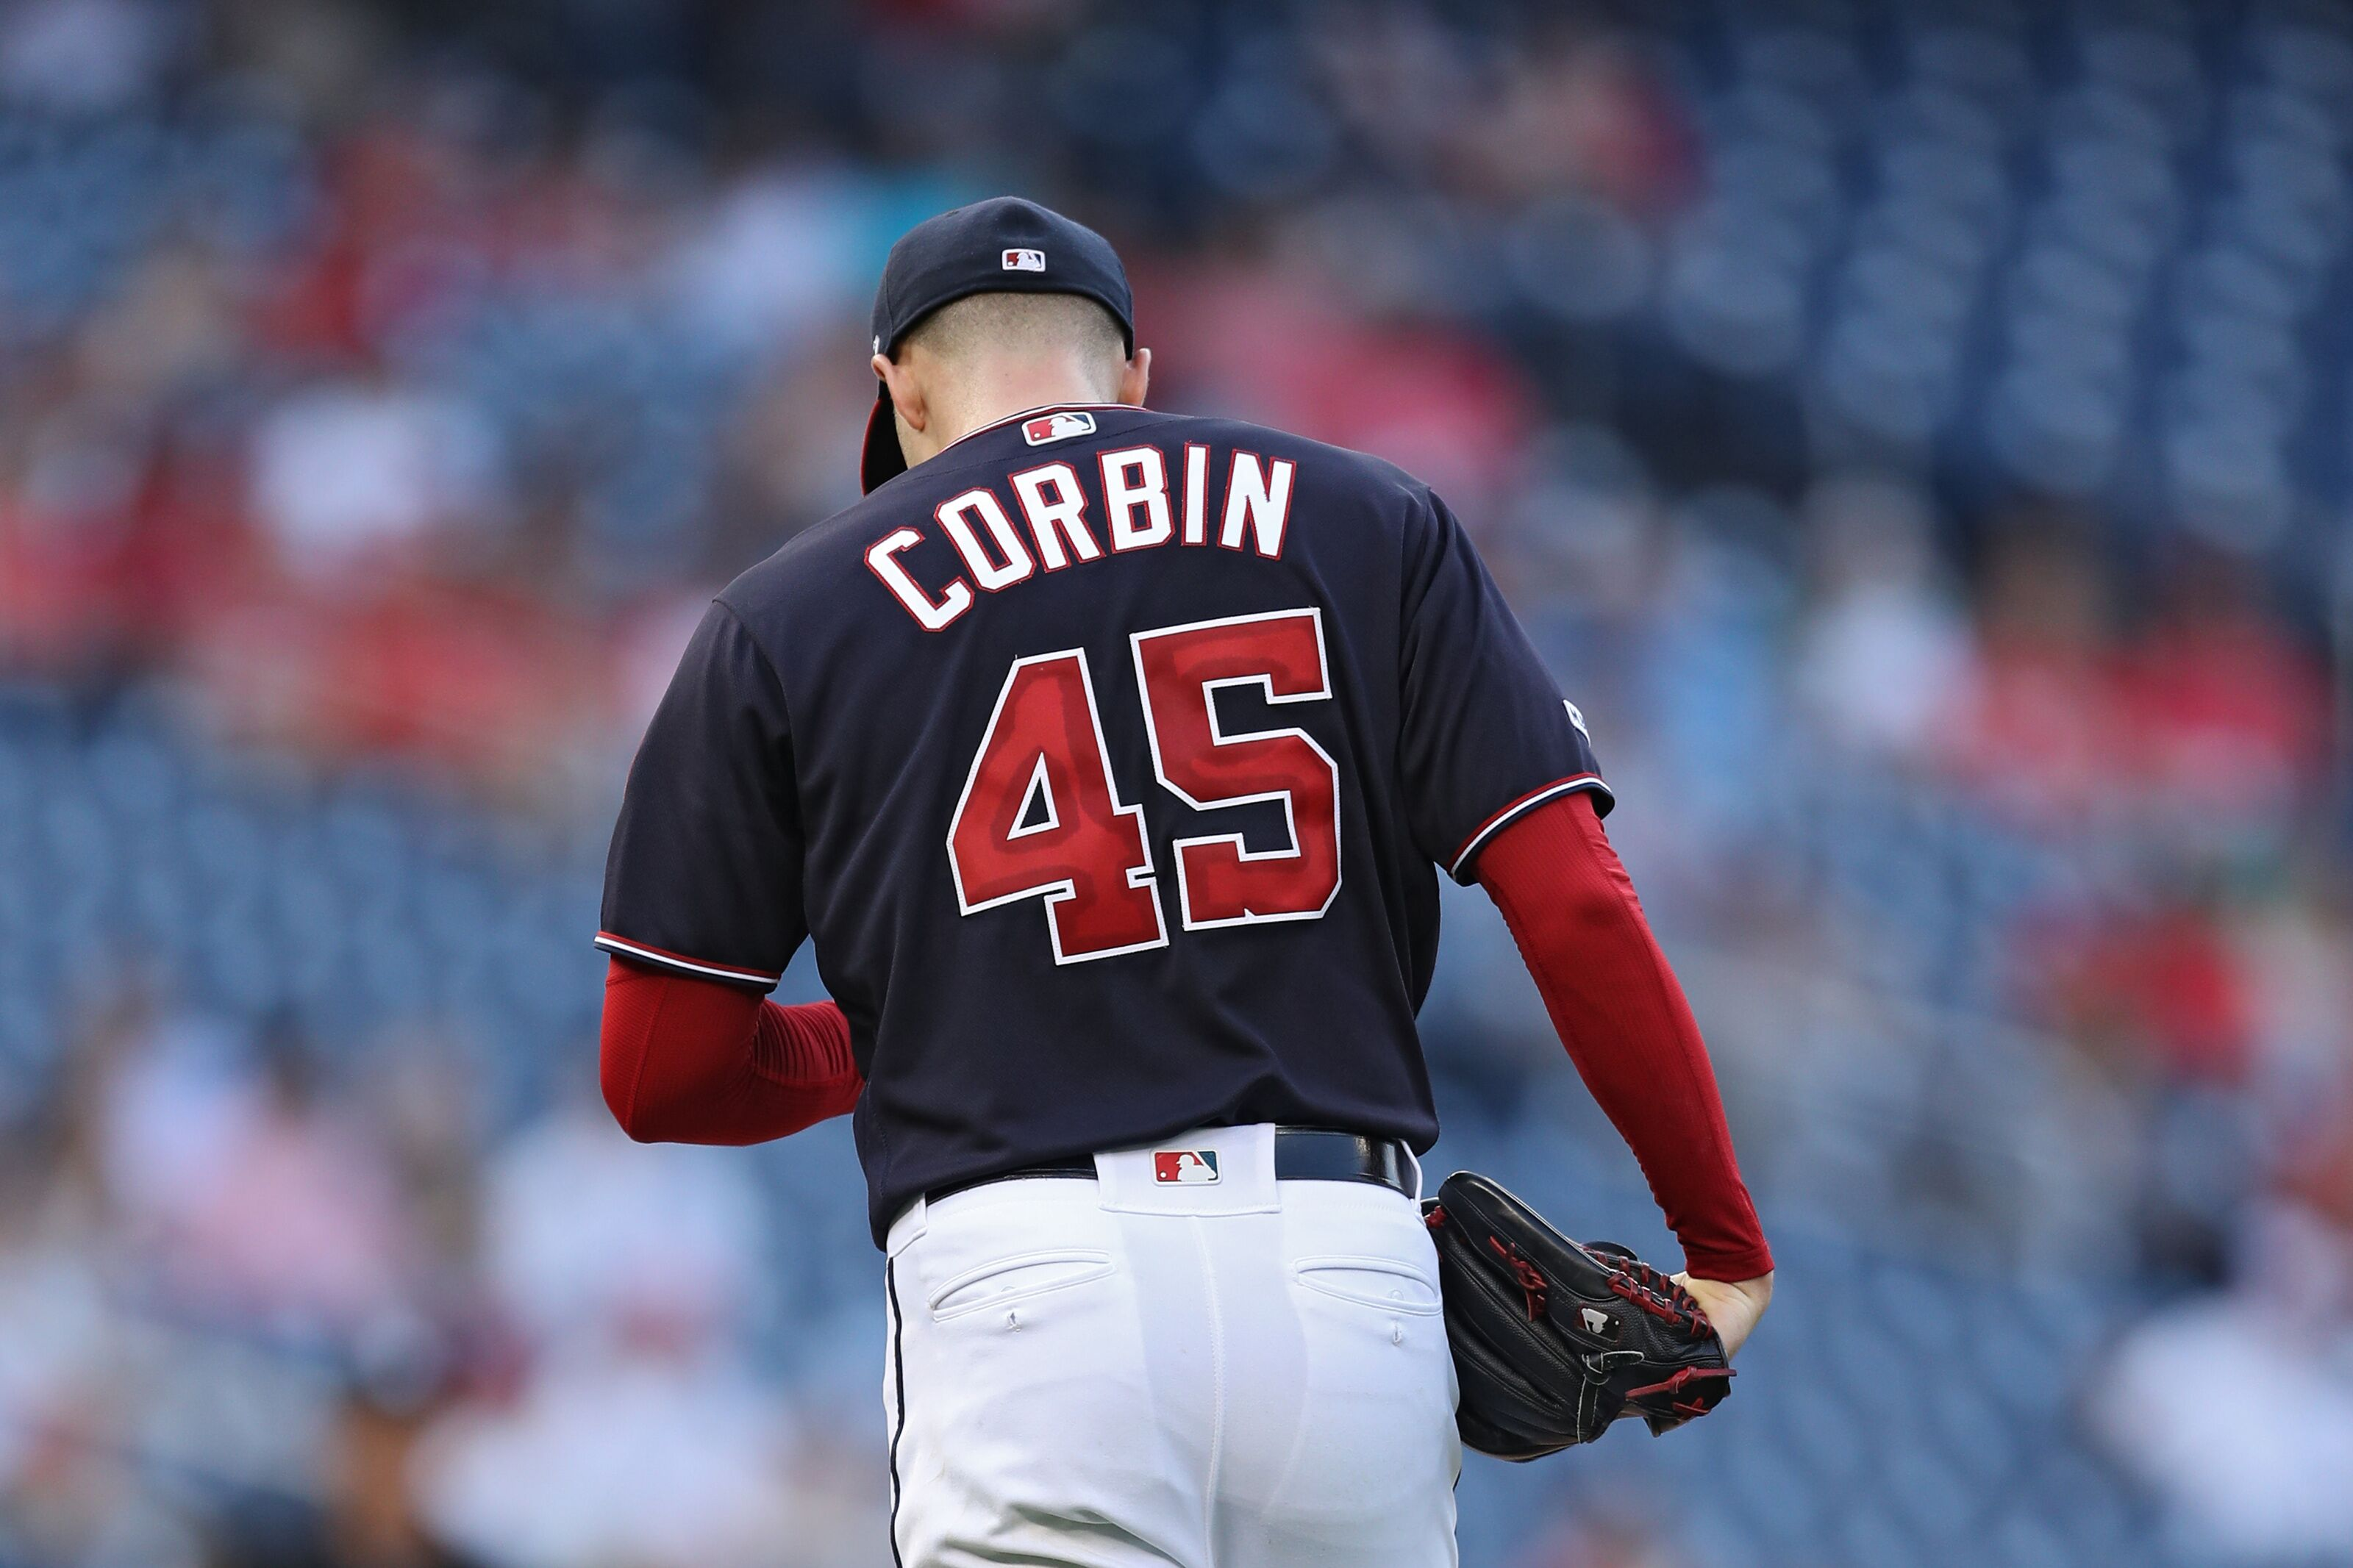 Washington Nationals: Patrick Corbin Has Found His Groove